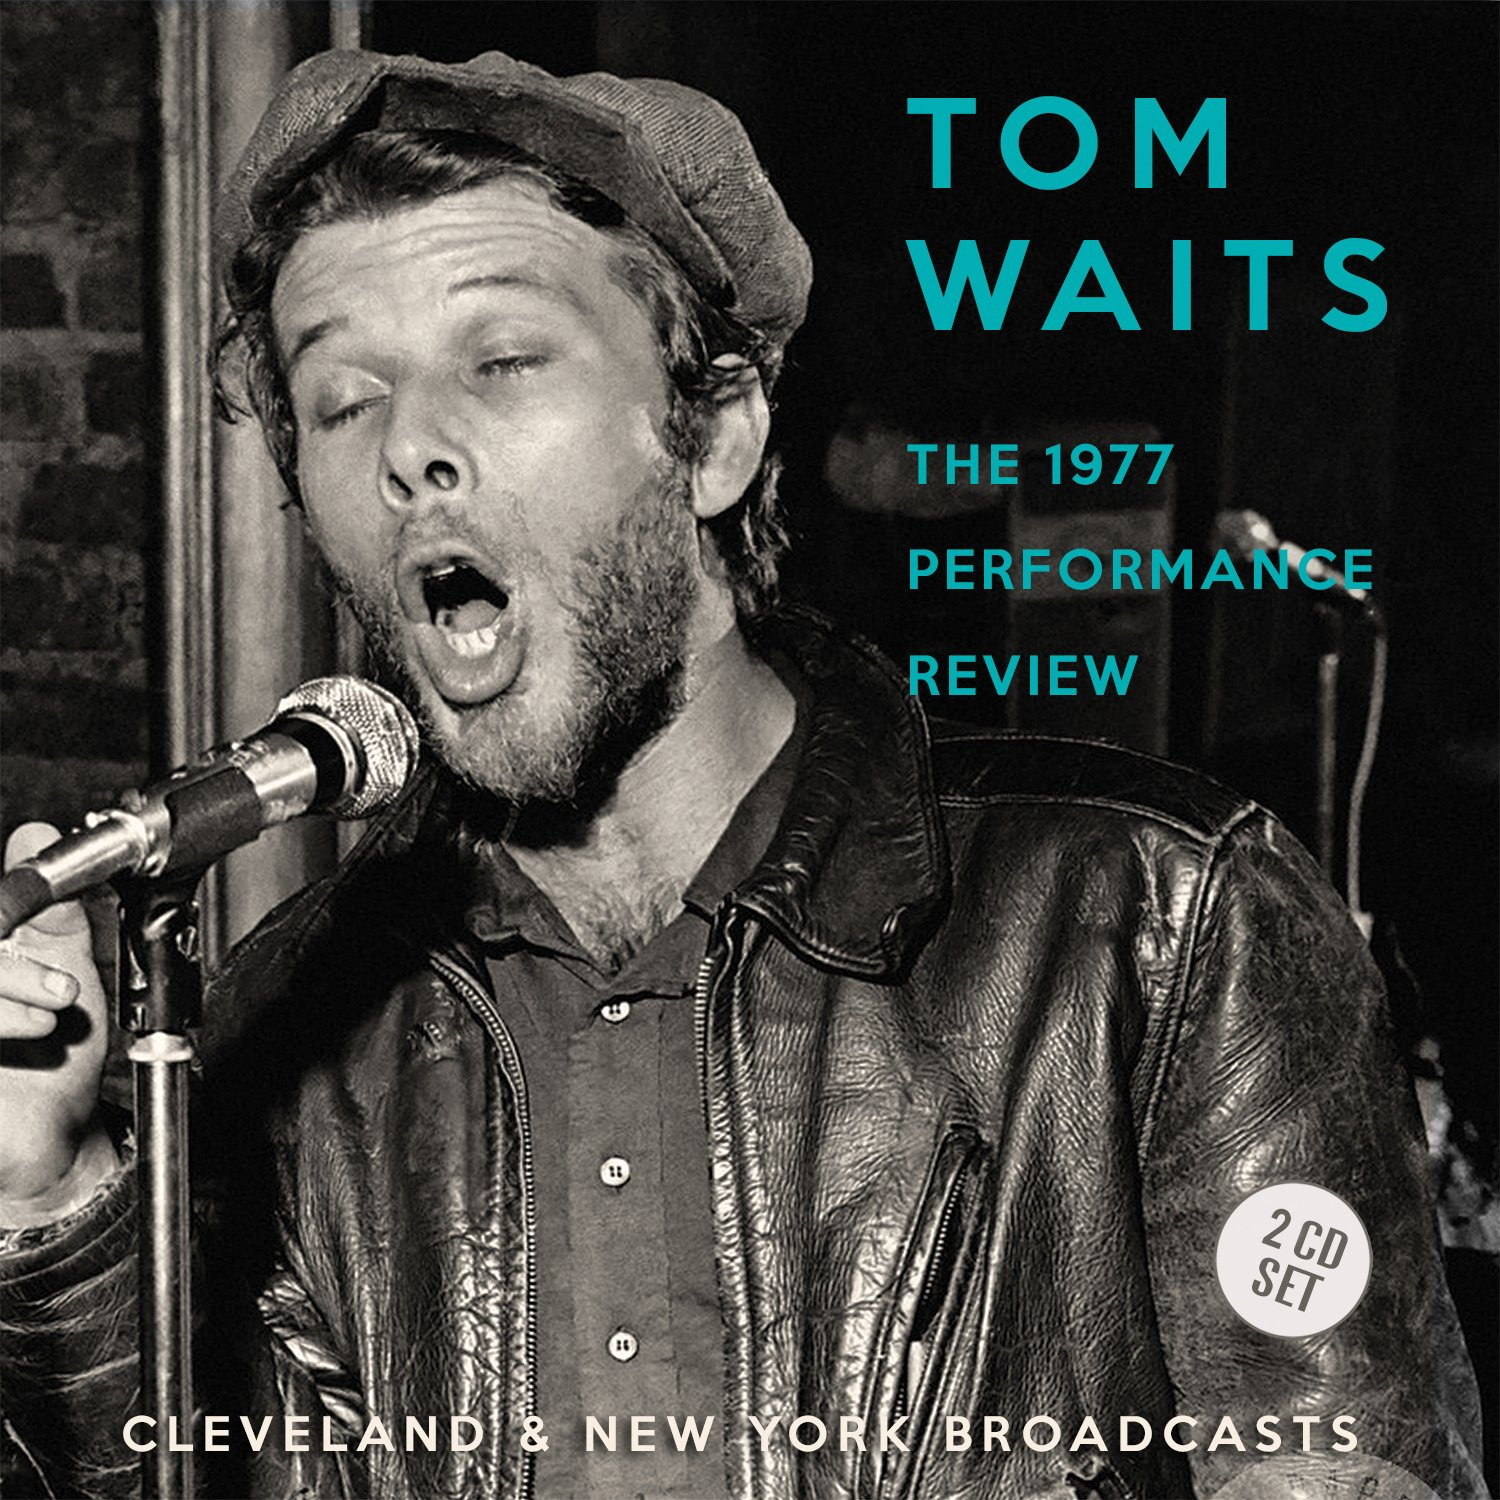 Tom Waits - The 1977 Performance Review (2Cd)